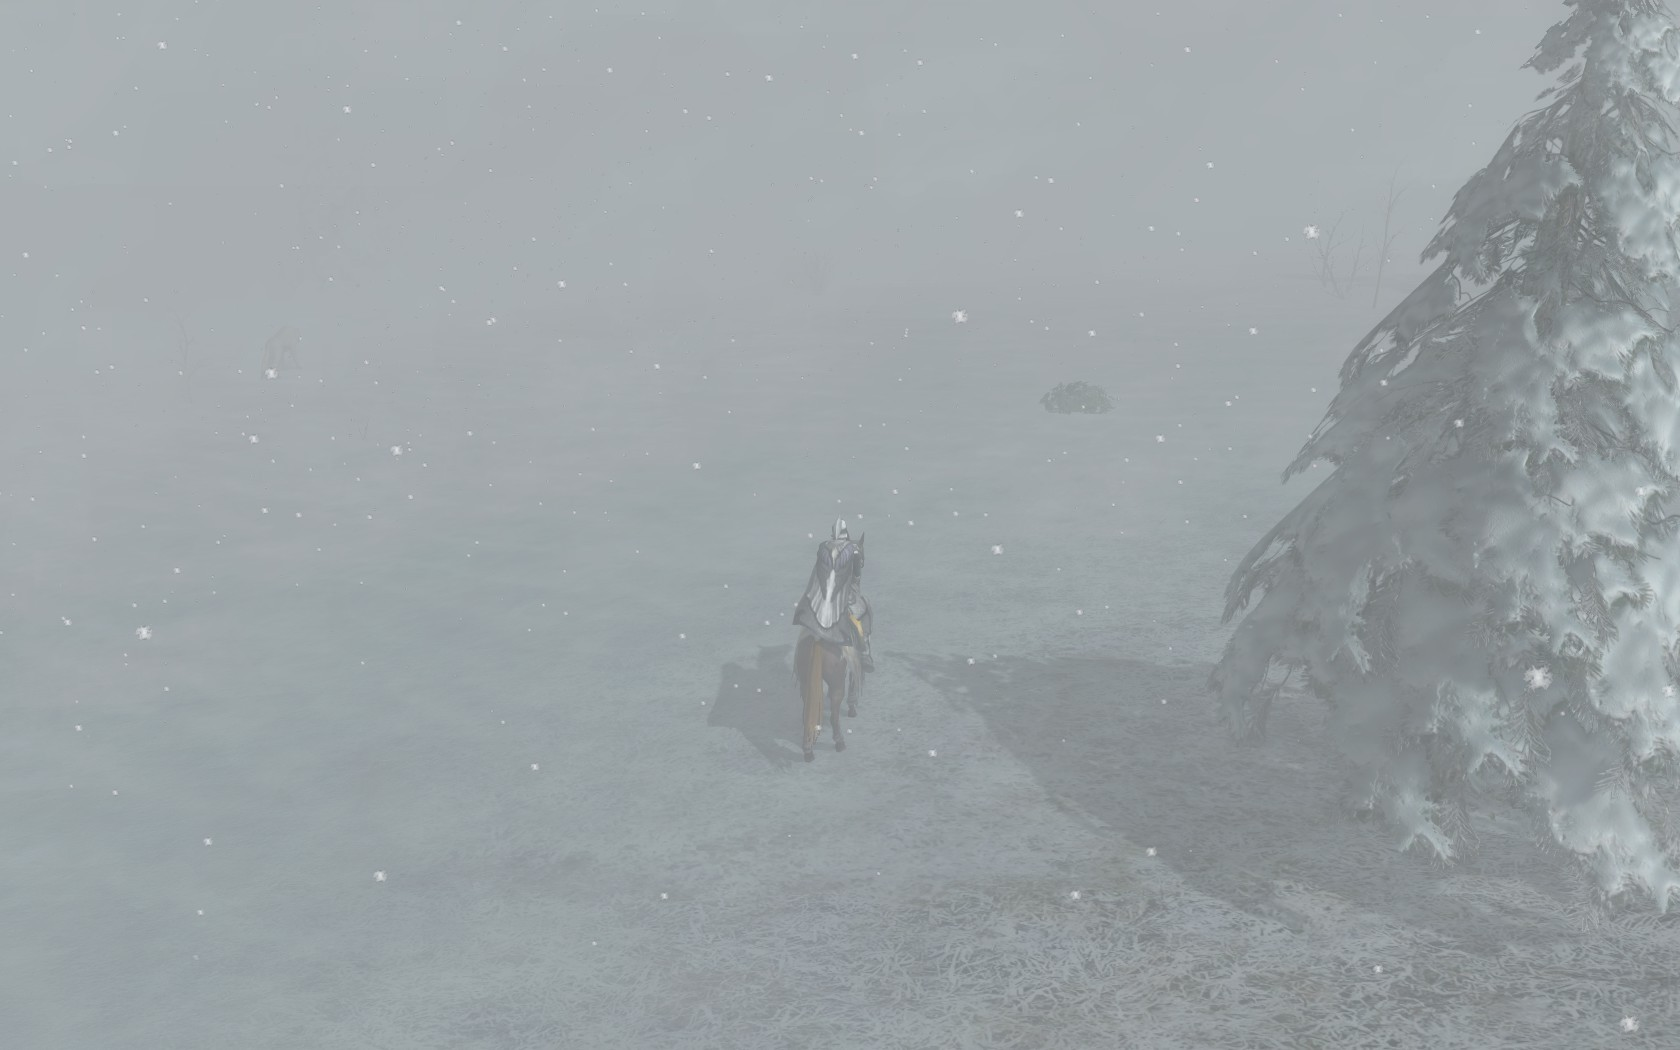 Lord of the Rings Online - Stuck in a blizzard in the Misty Mountains